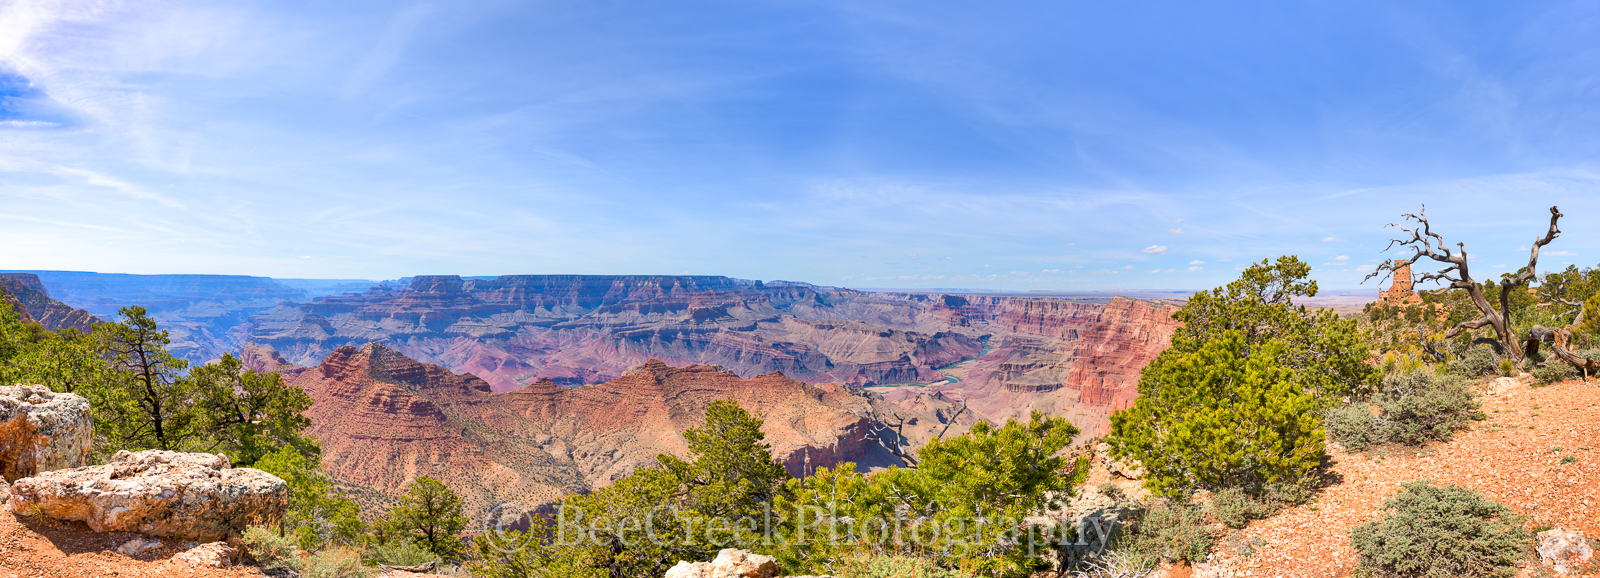 AZ, Arizona, Grand Canyon, Peter lik, beautiful landscape, colorado river, grand canyon images, grand canyon photos, grand canyon pictures, images of grand canyons, indains, landscape, landscapes, mos, photo